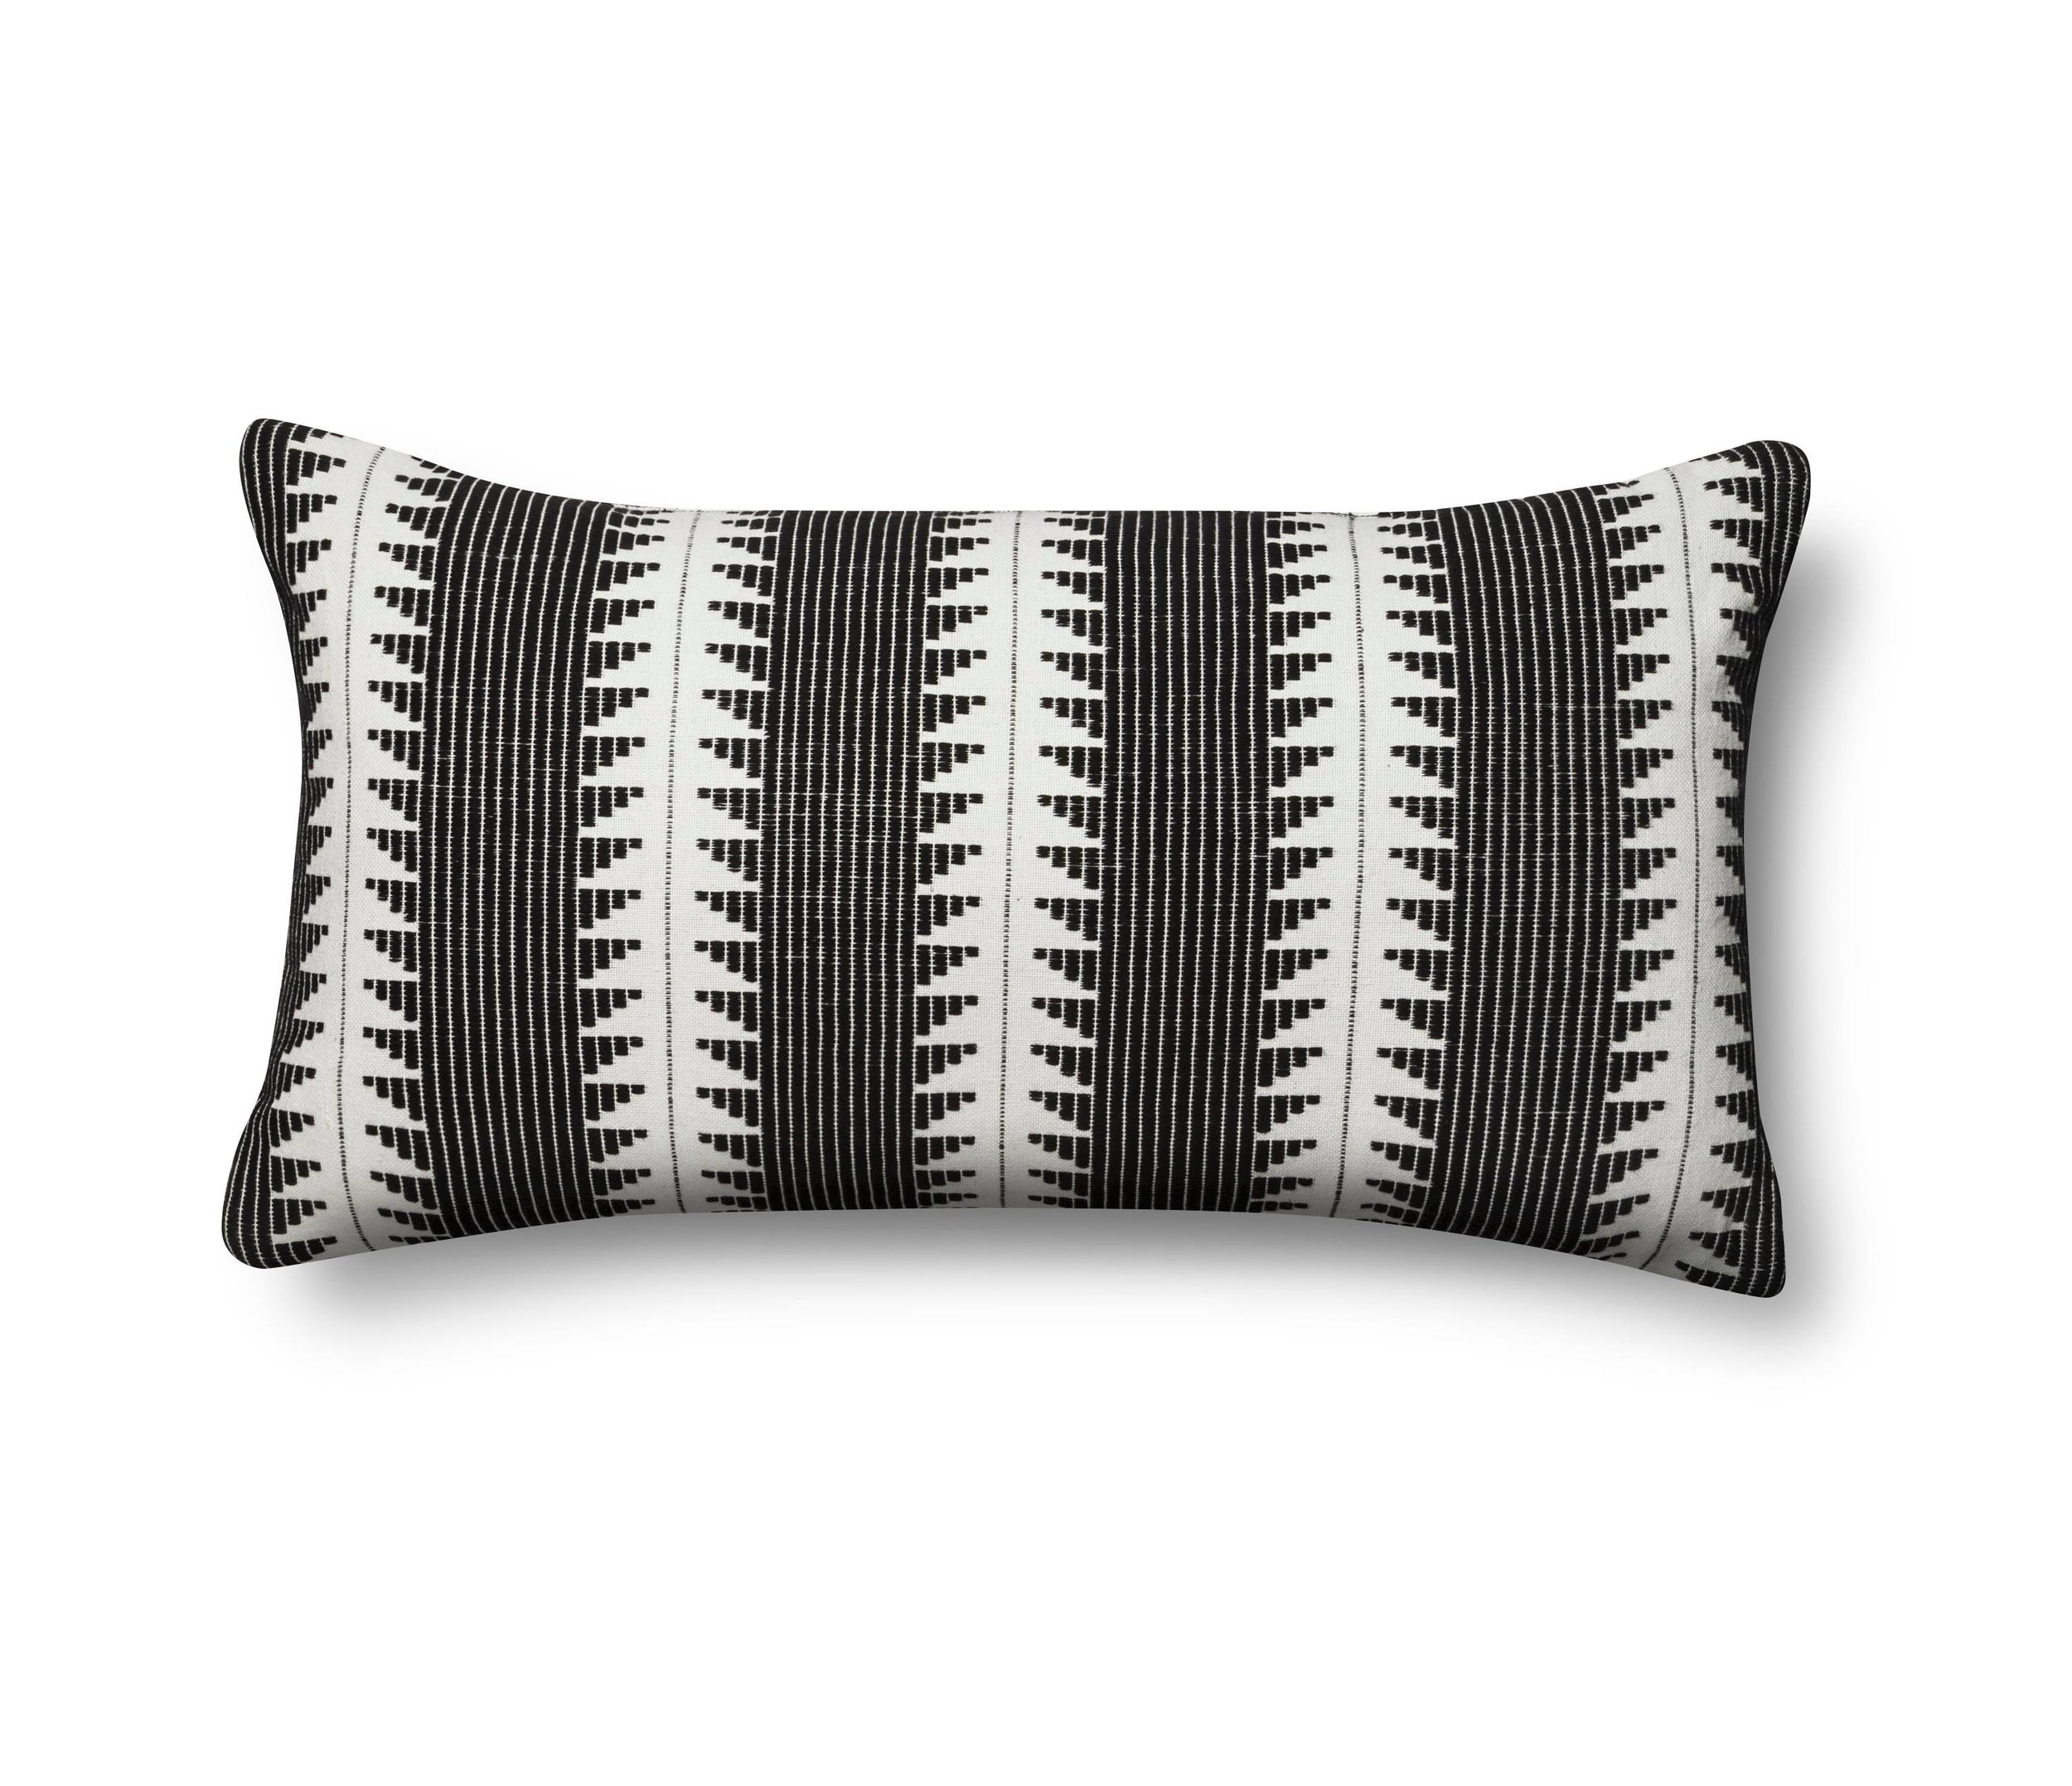 Target black global oversized lumbar throw pillow.jpeg